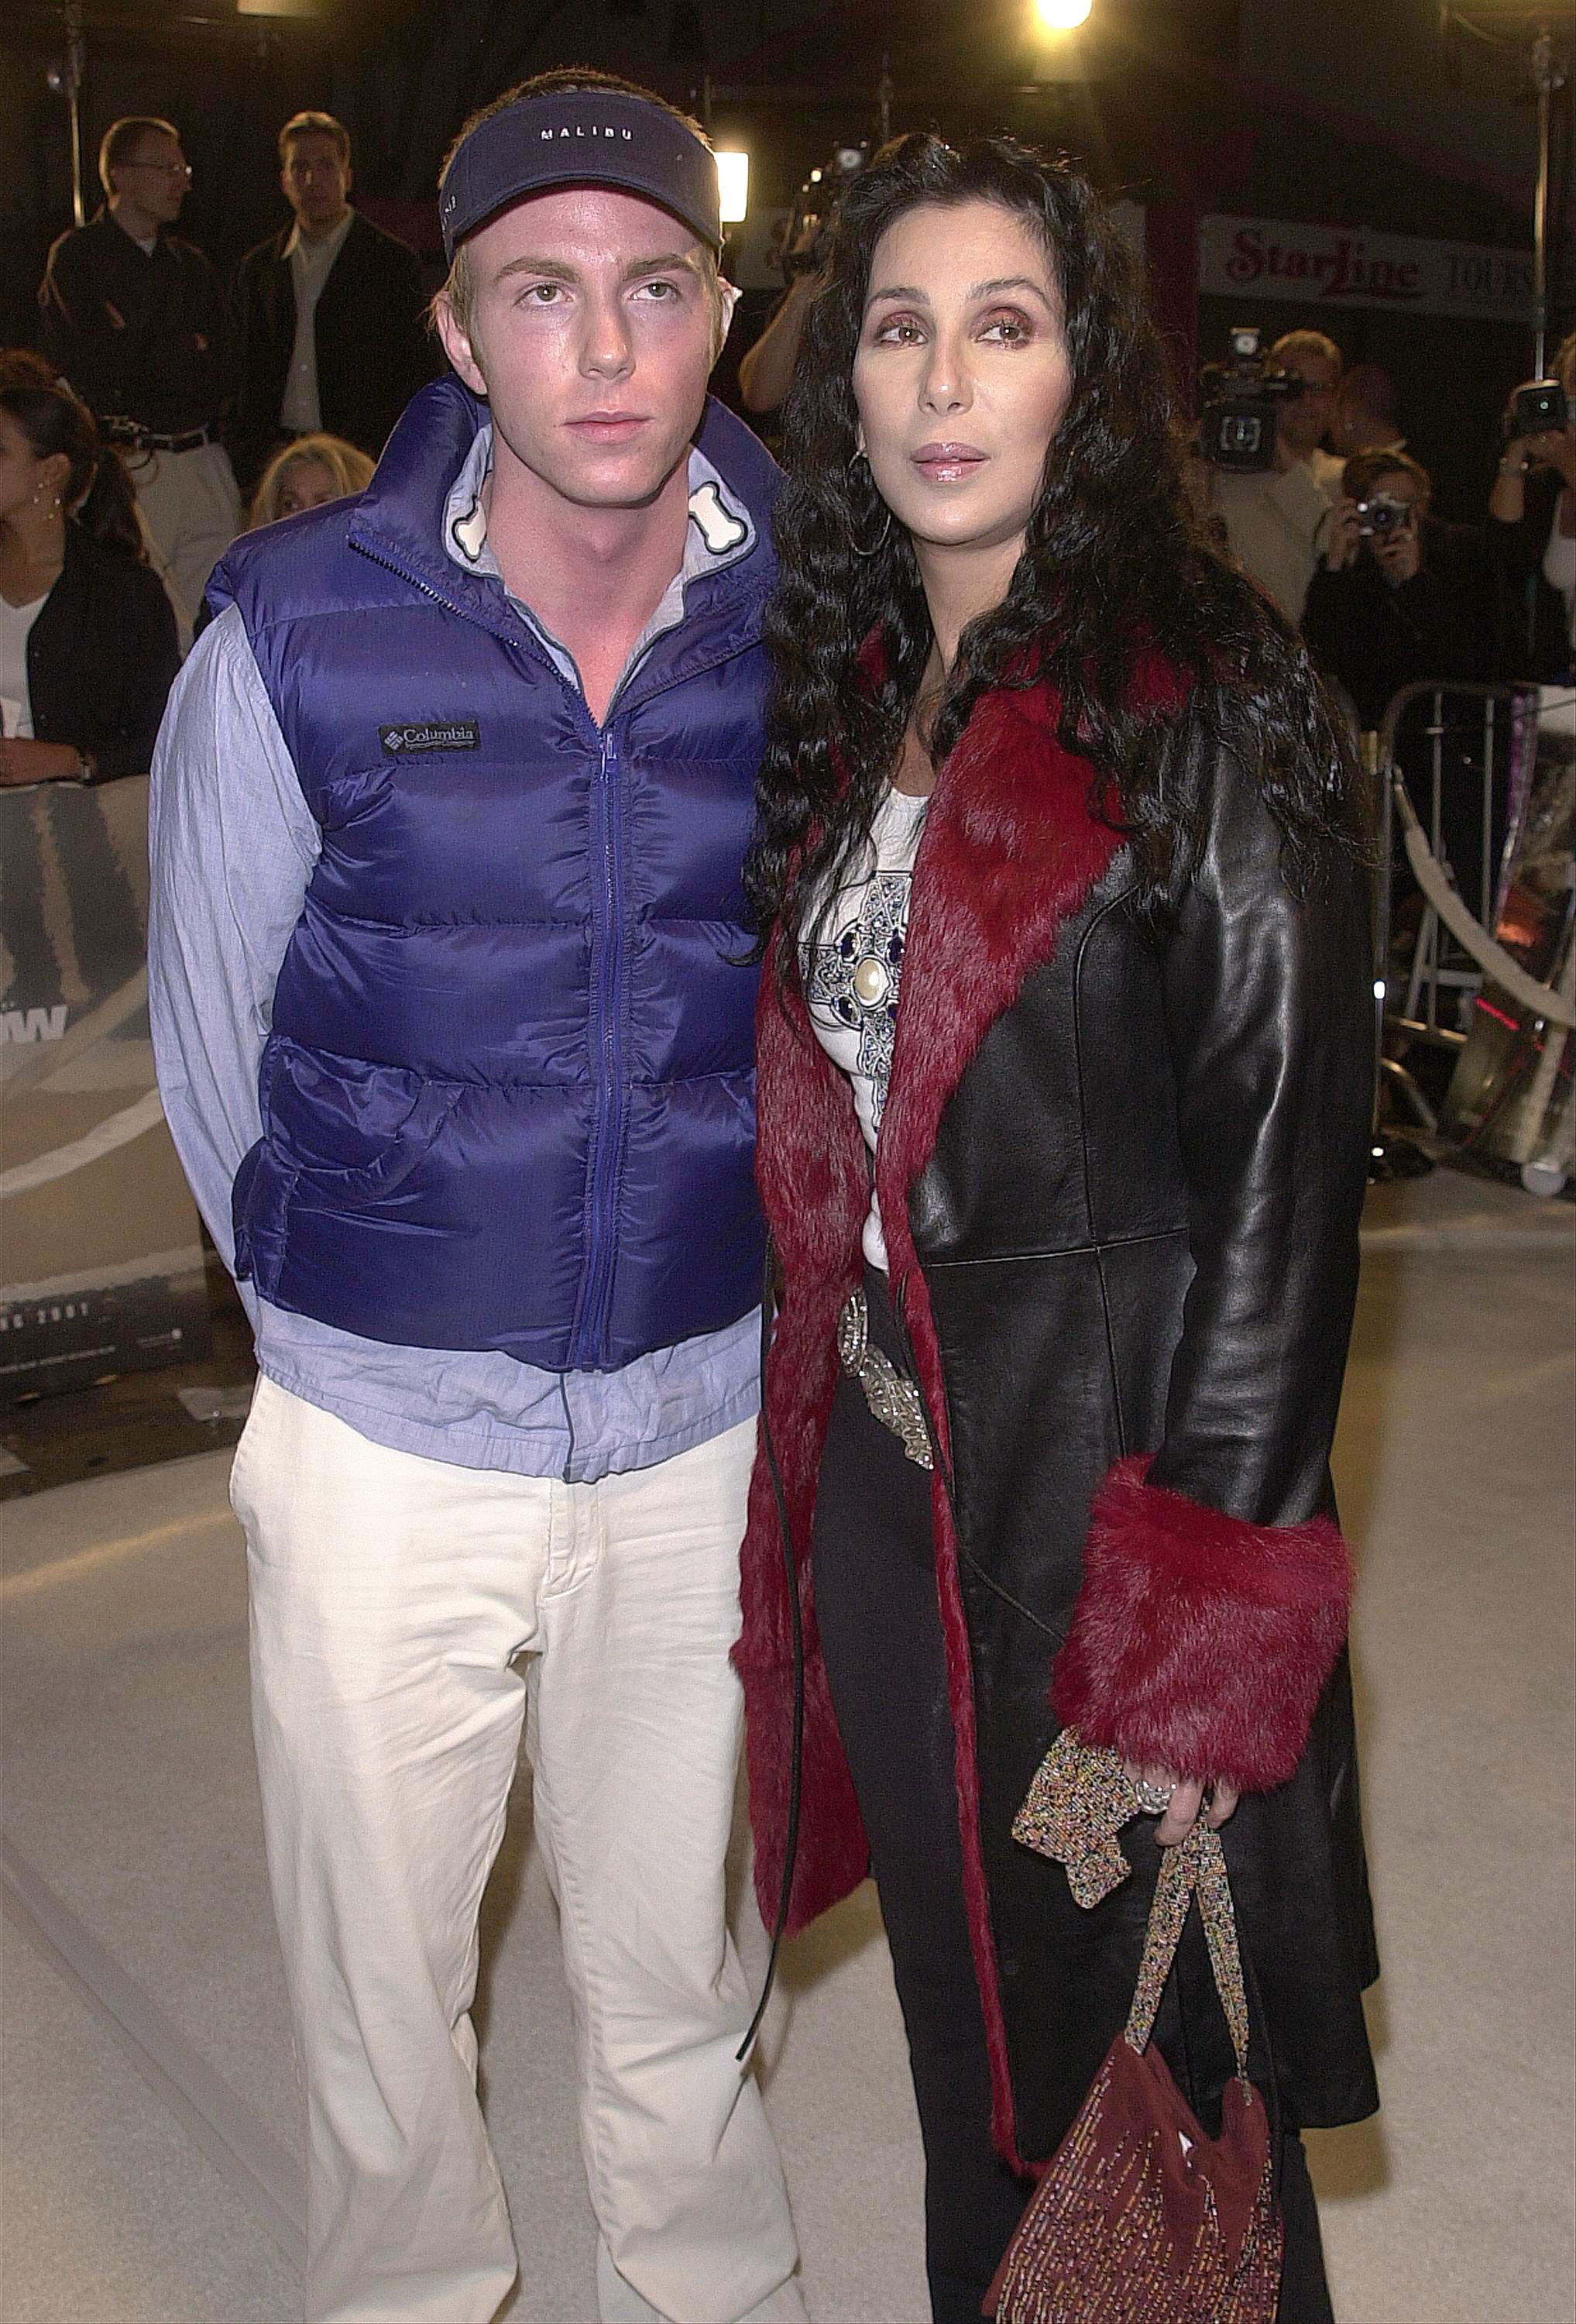 """Elijah Blue Allman and Cher at the premiere of the film """"Blow"""" on March 29, 2001, at the Mann's Chinese Theatre in Hollywood, California 